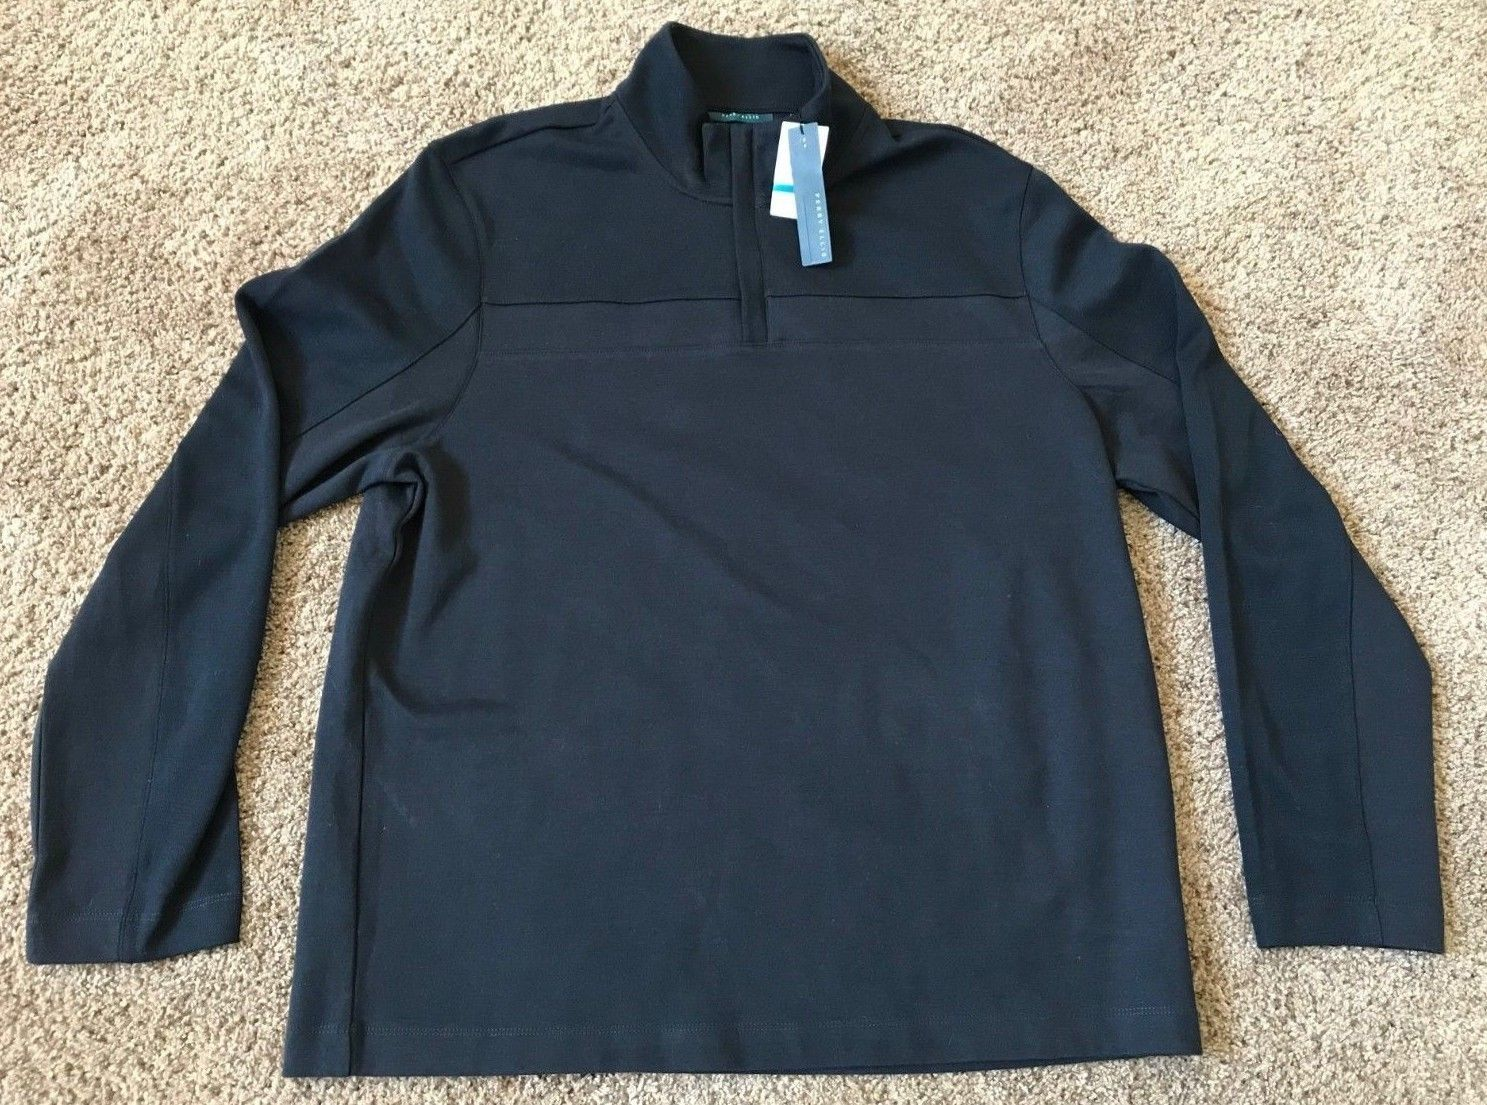 Primary image for NEW PERRY ELLIS 1/4 1/2 ZIP SWEATER TOP DARK SAPPHIRE NWT MENS XL NAVY BLUE